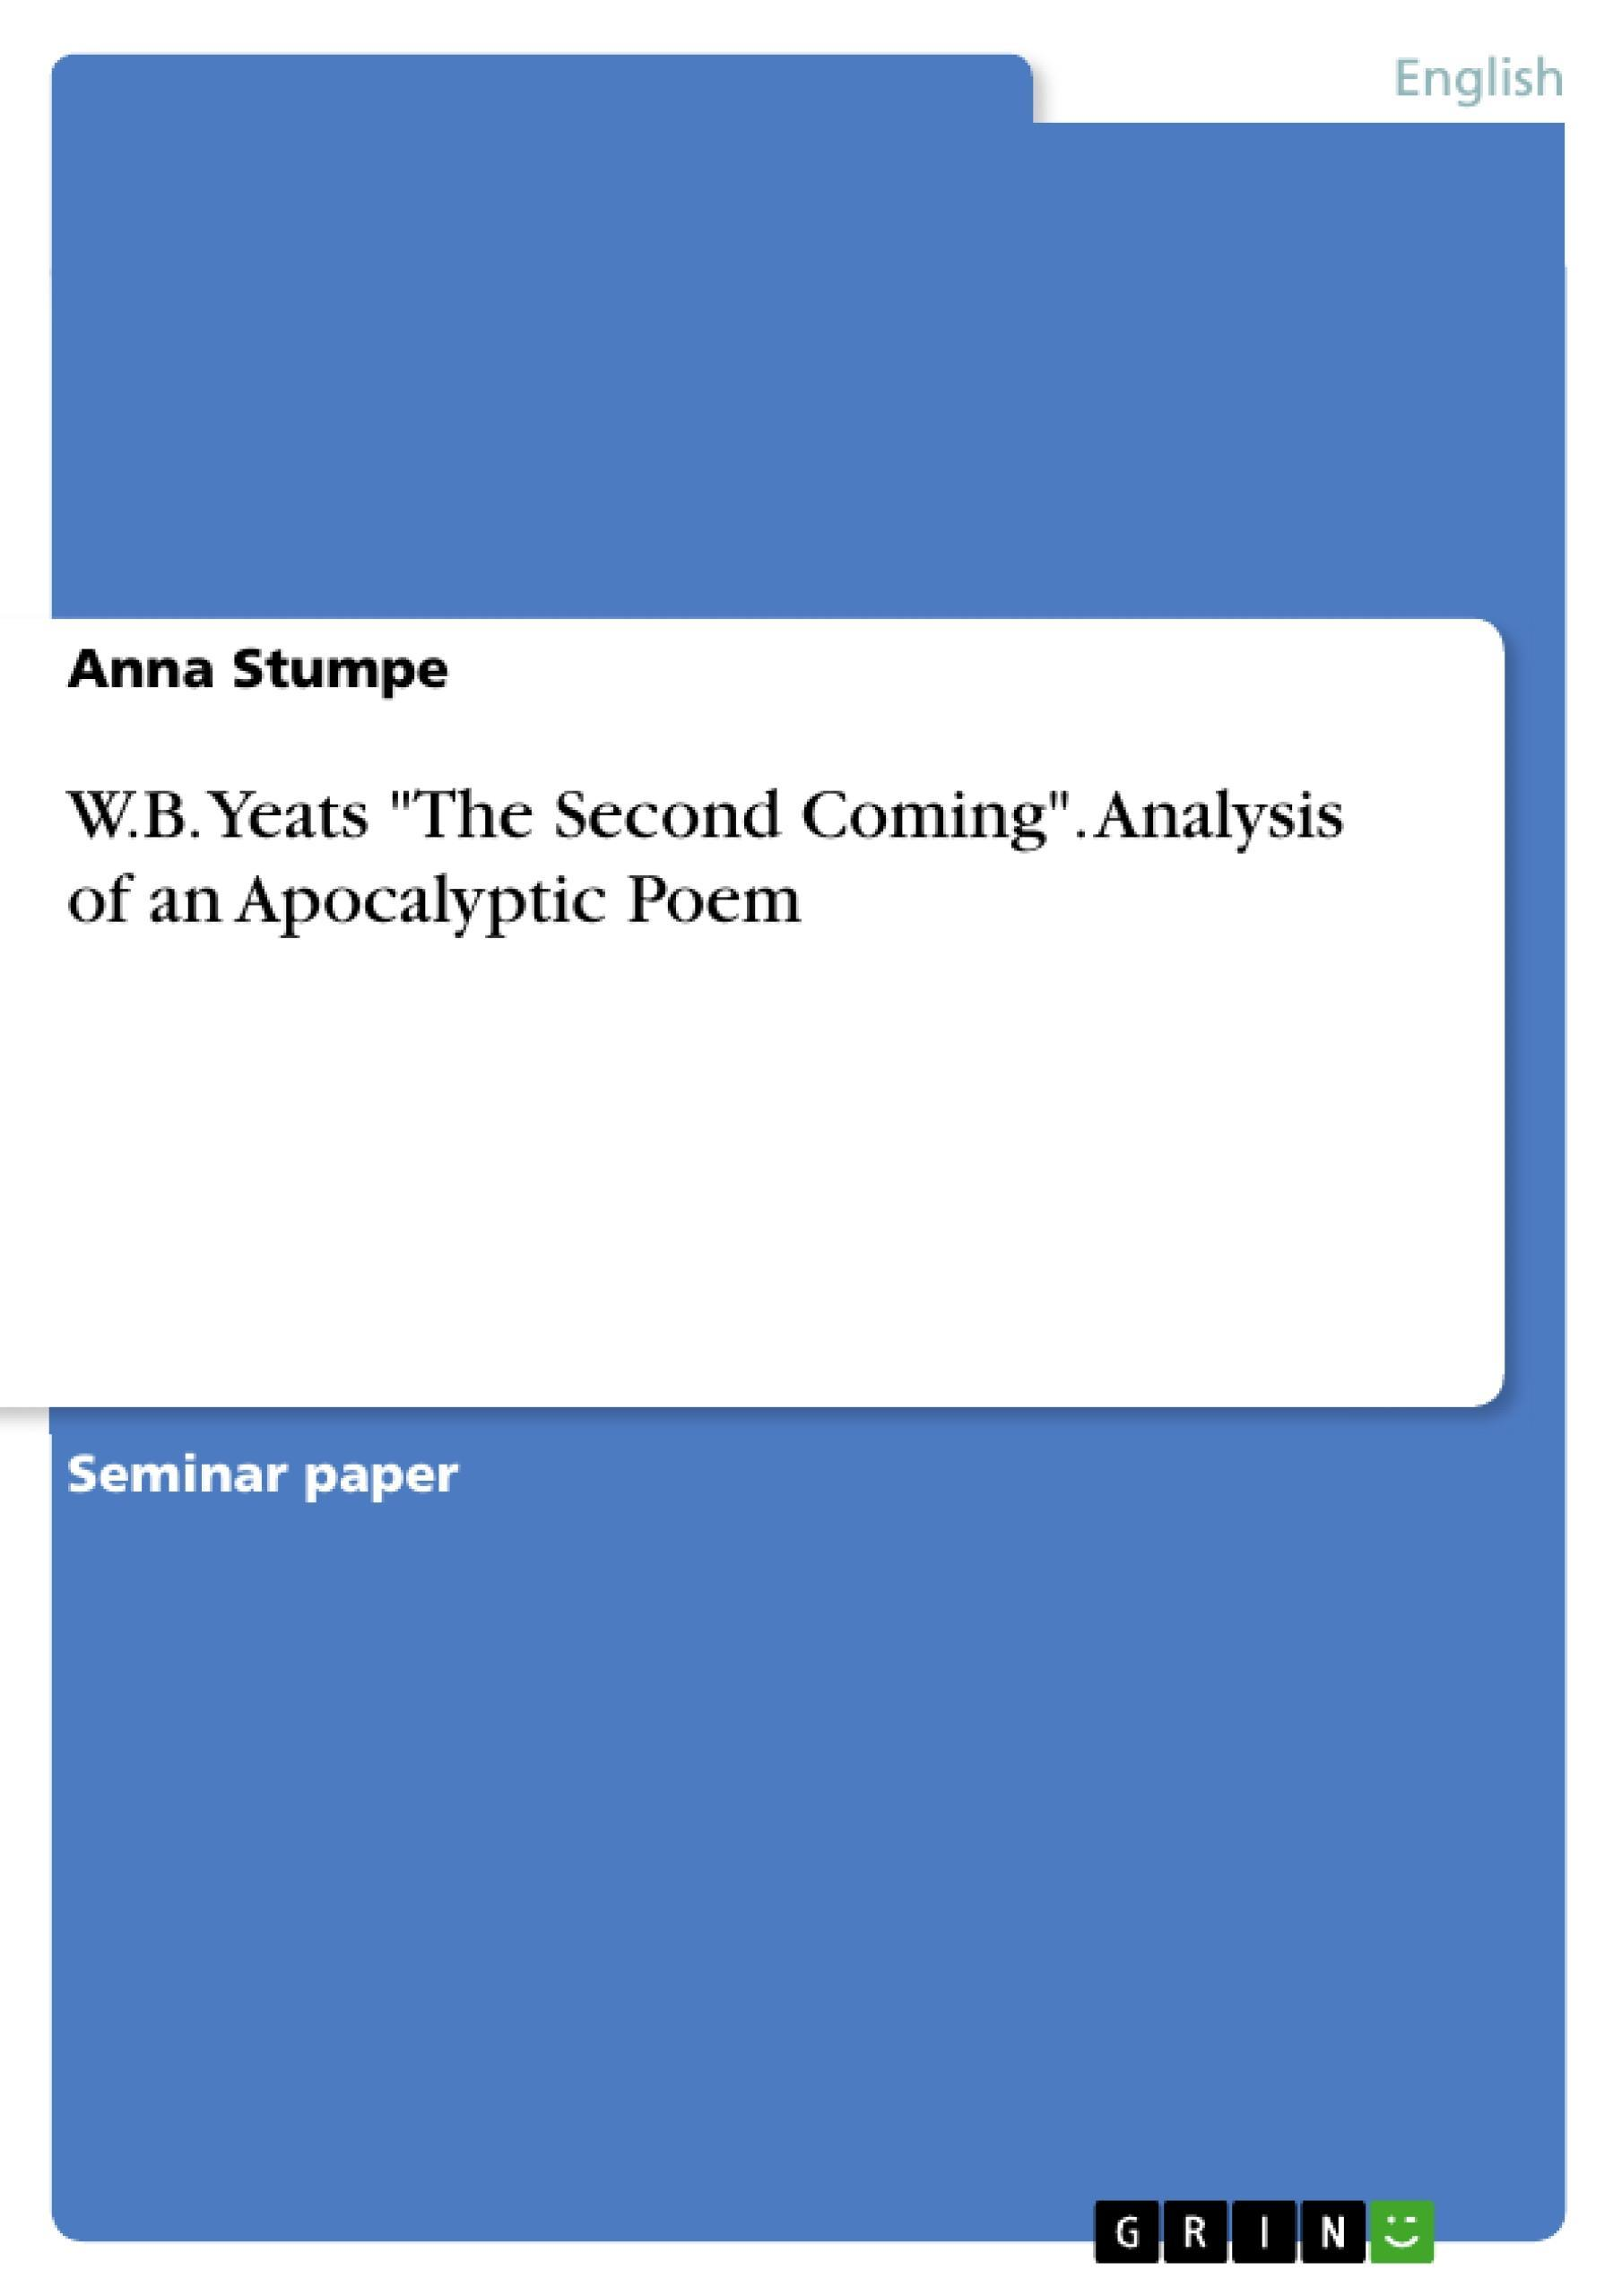 "W.B. Yeats """"The Second Coming"""". Analysis of an Apocalyptic Poem Anna Stum ..."